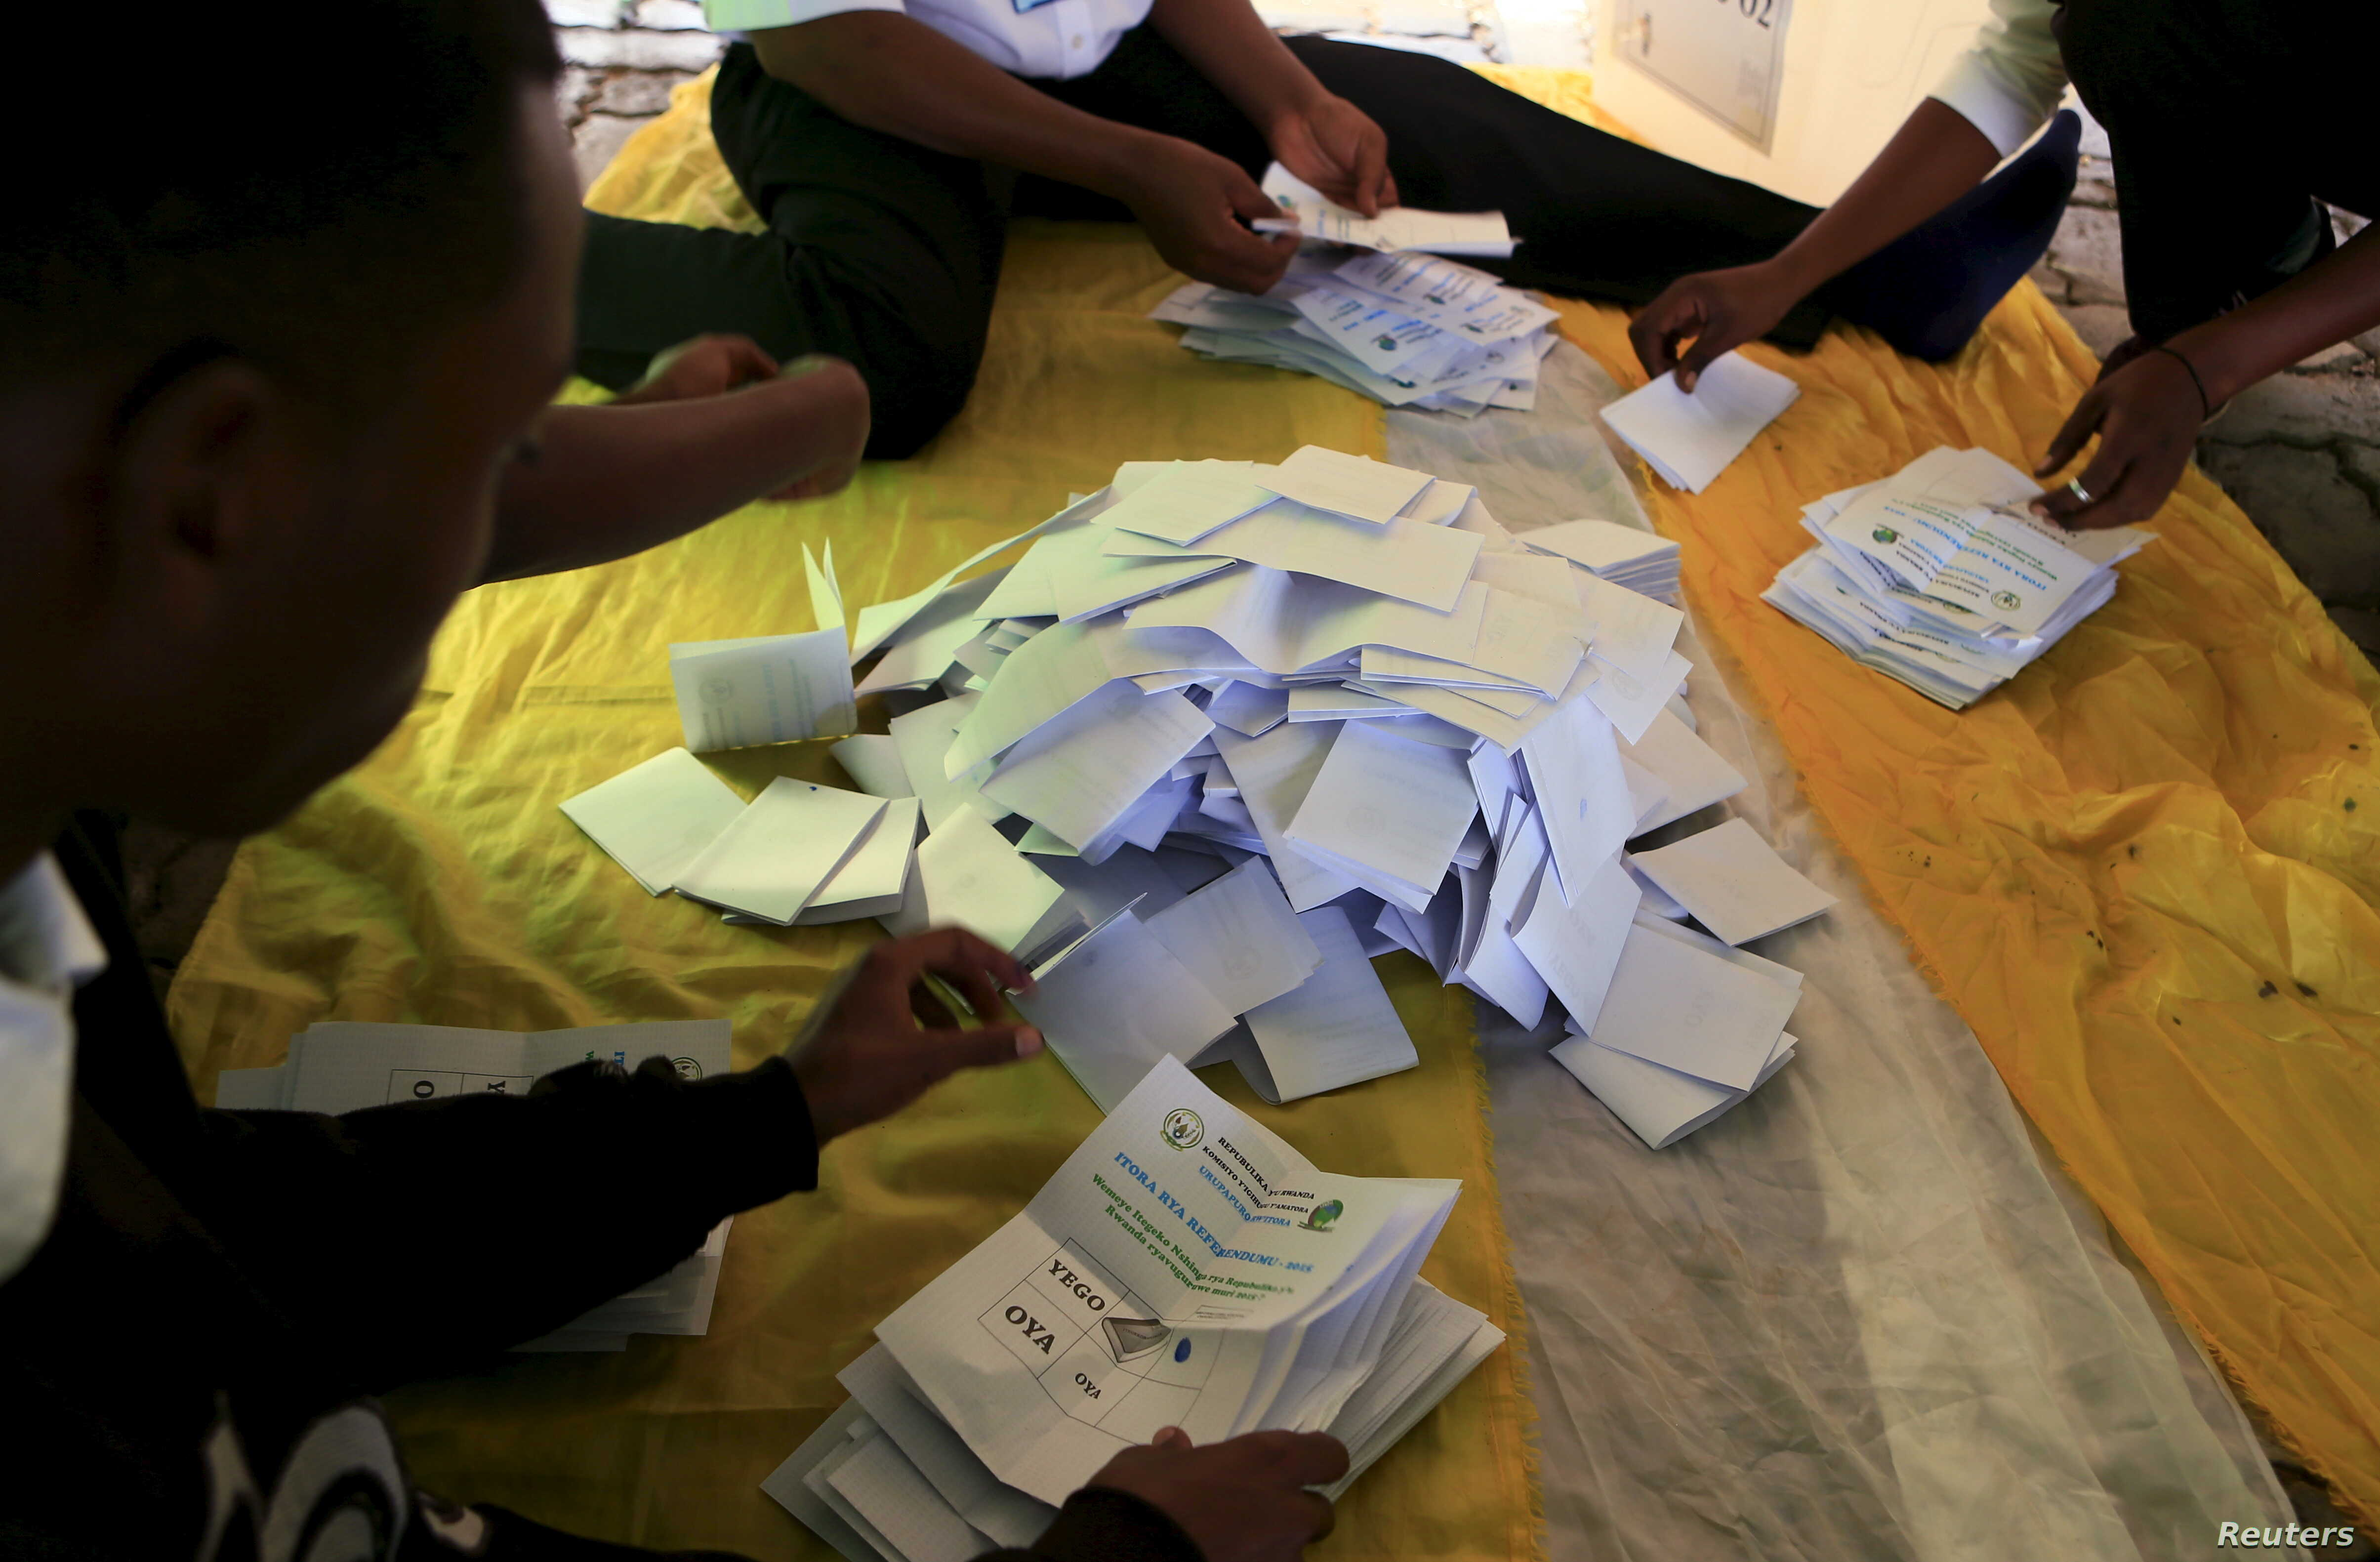 Rwanda election officials in Kigali count votes cast in a referendum on amending the nation's constitution to allow President Paul Kagame to seek a third term during next year's election, Dec. 18, 2015.